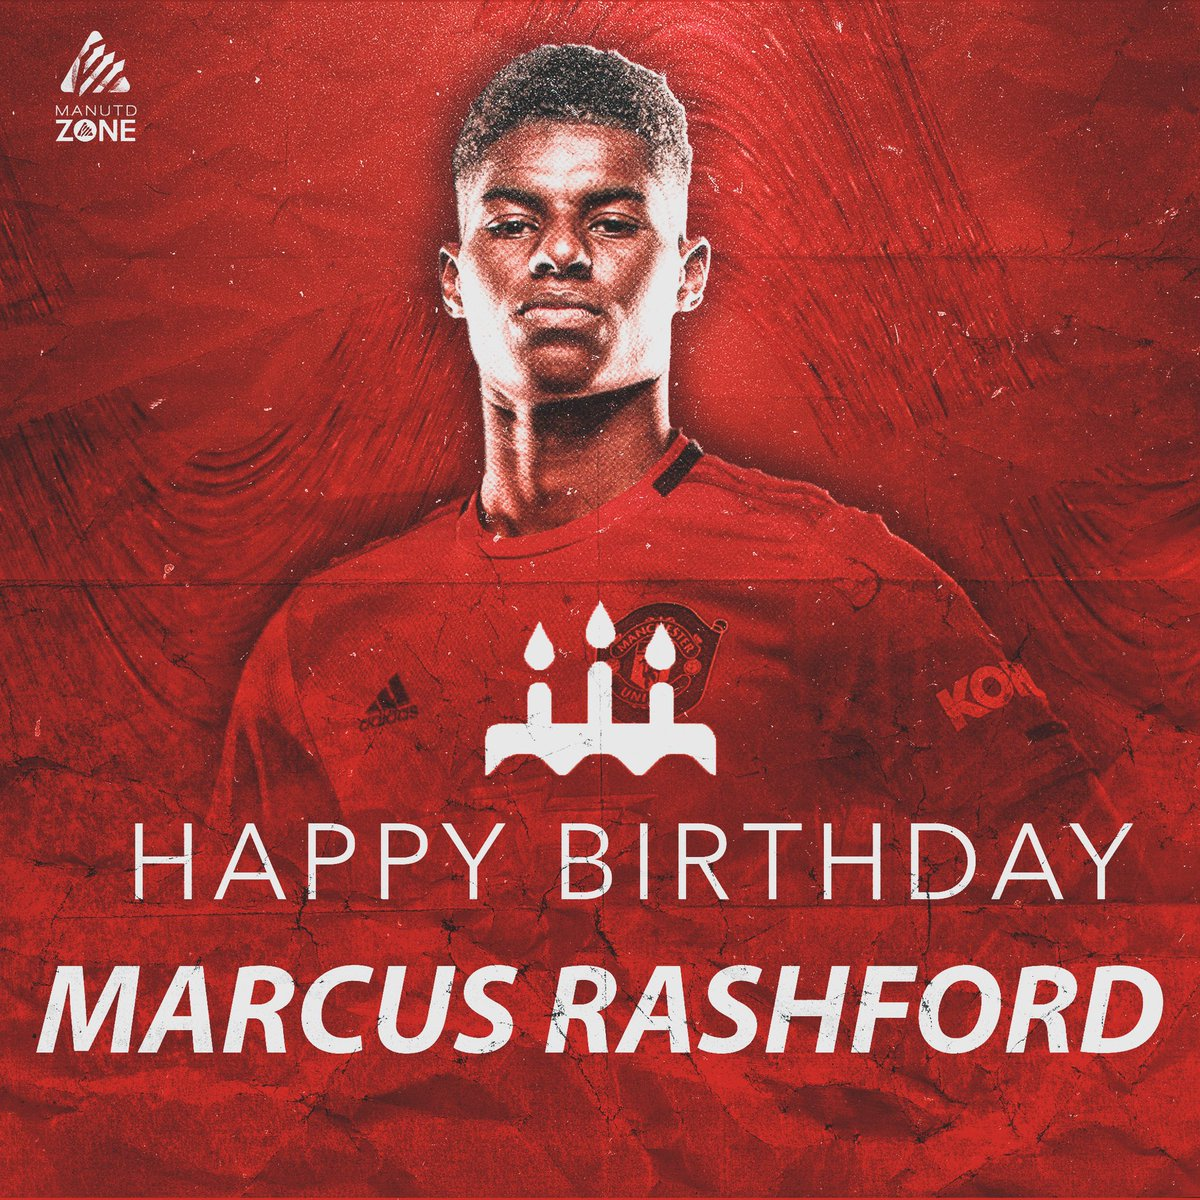 Happy birthday to @MarcusRashford, who turns 23 today! 🎉🔴 #MUFC https://t.co/bhvQtiFBUp